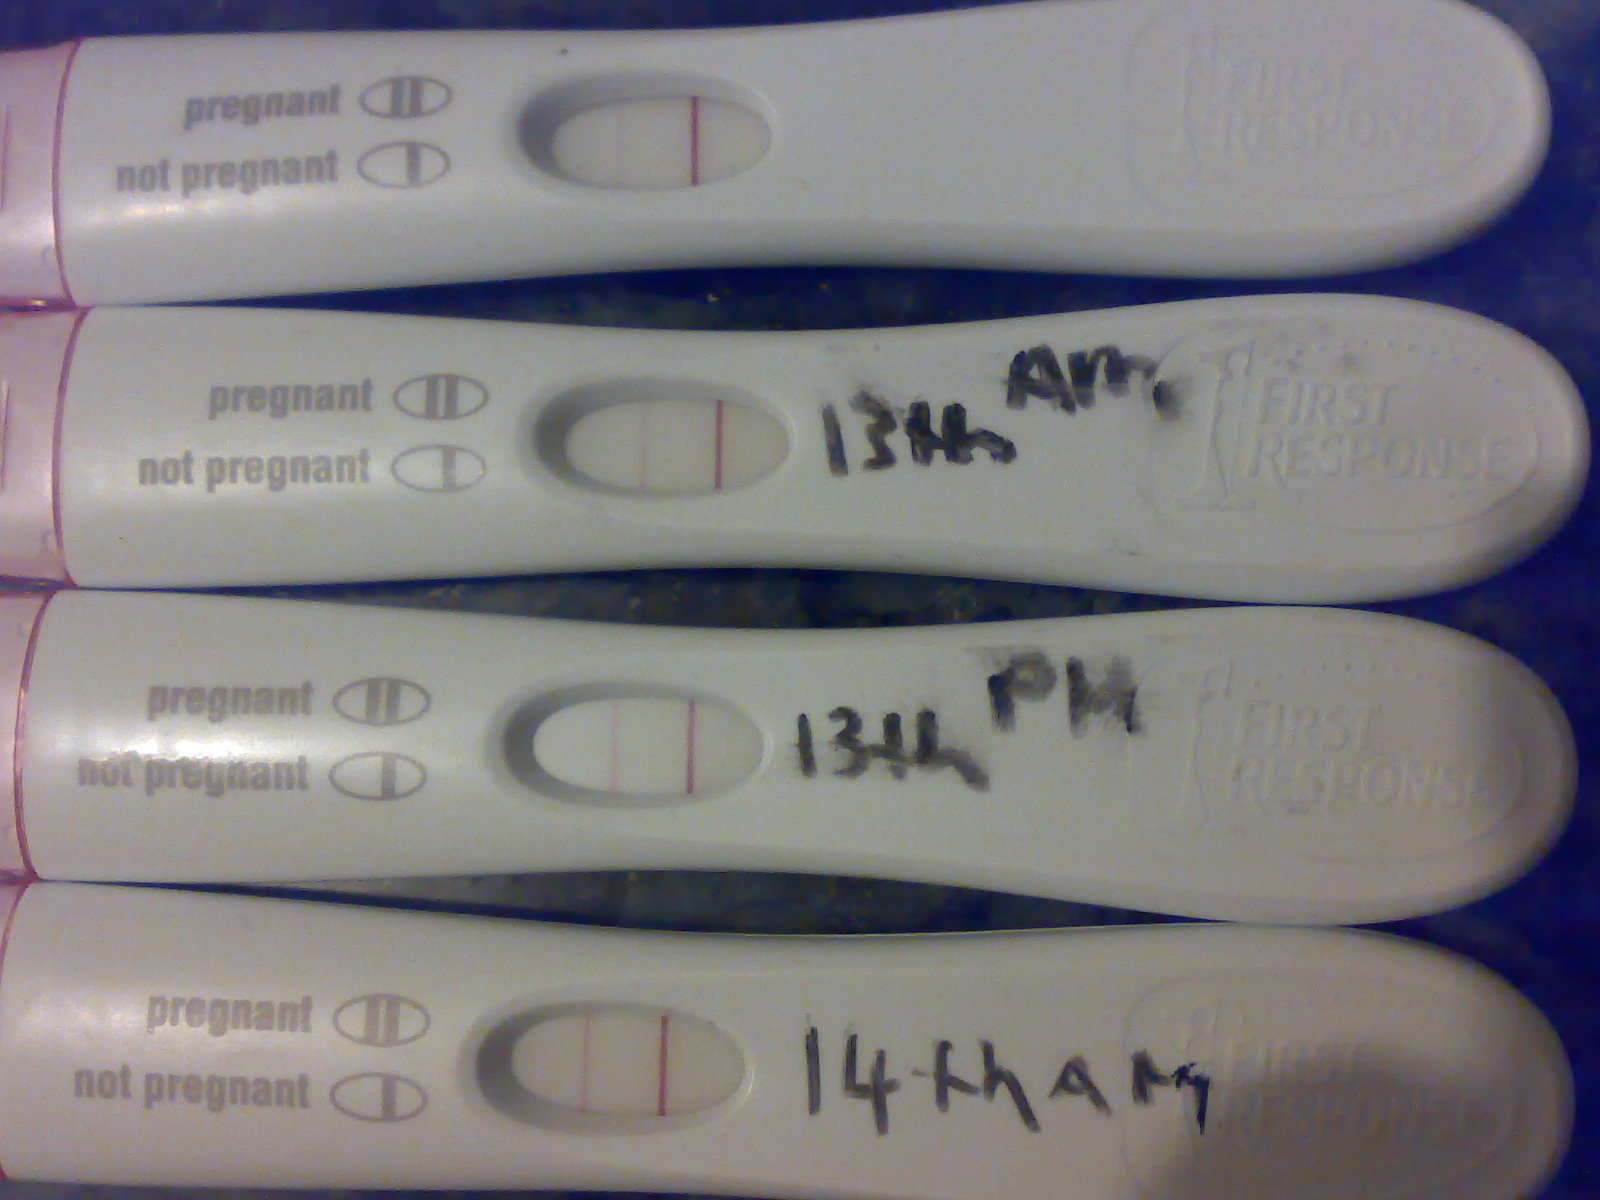 Moving Forward after Miscarriage: 3 Weeks and 5 Days Pregnant